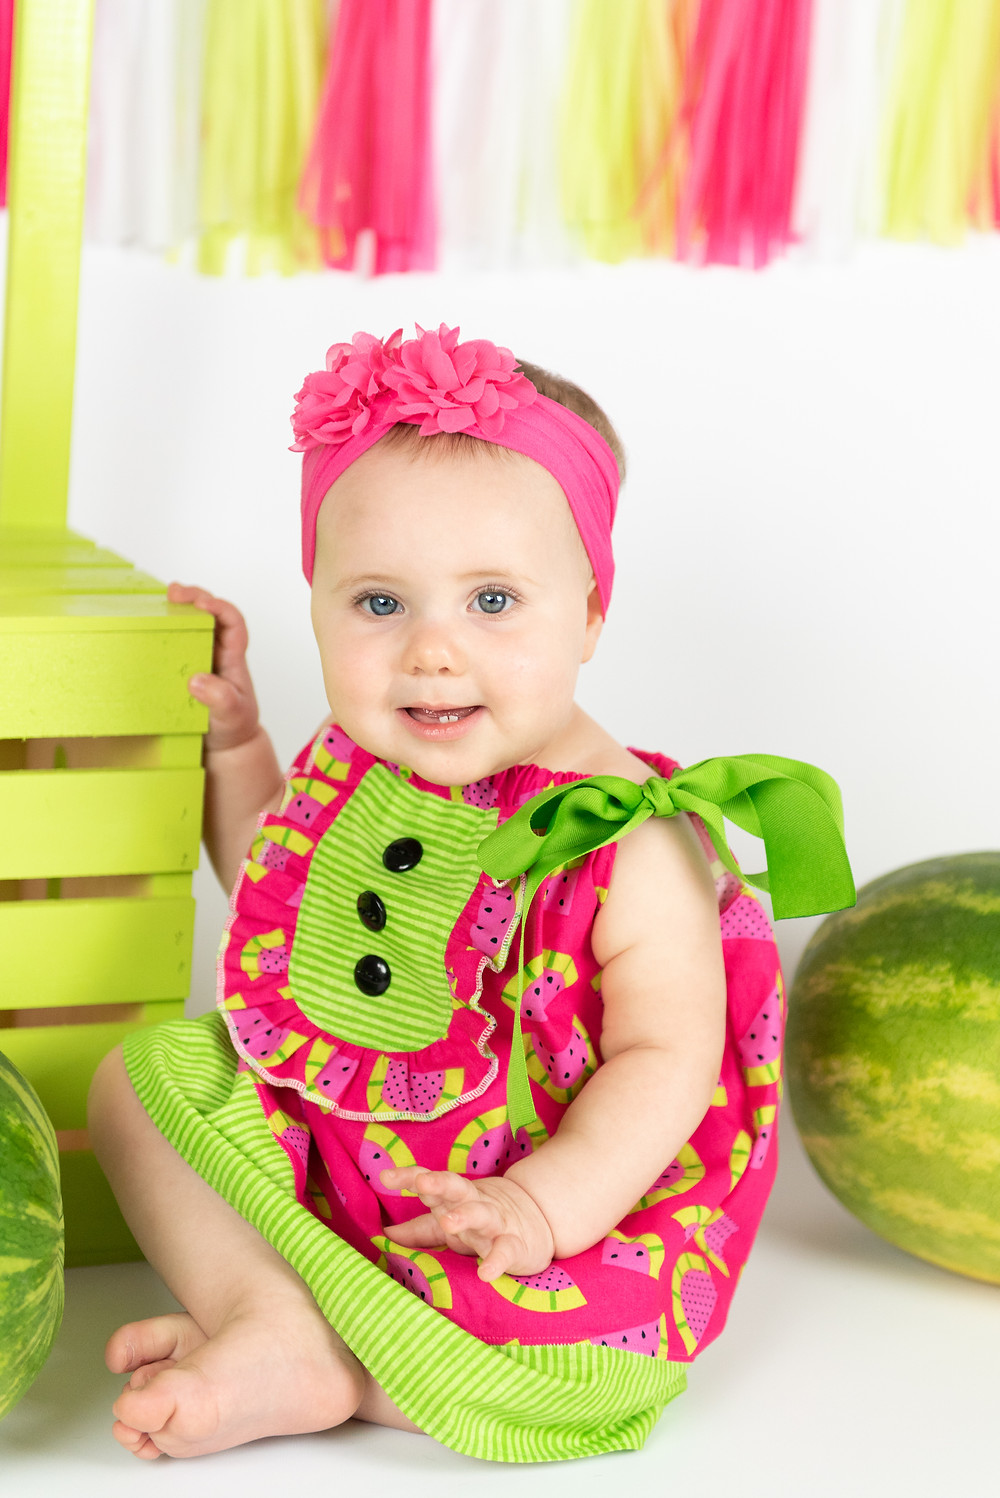 One year old watermelon cake smash session.